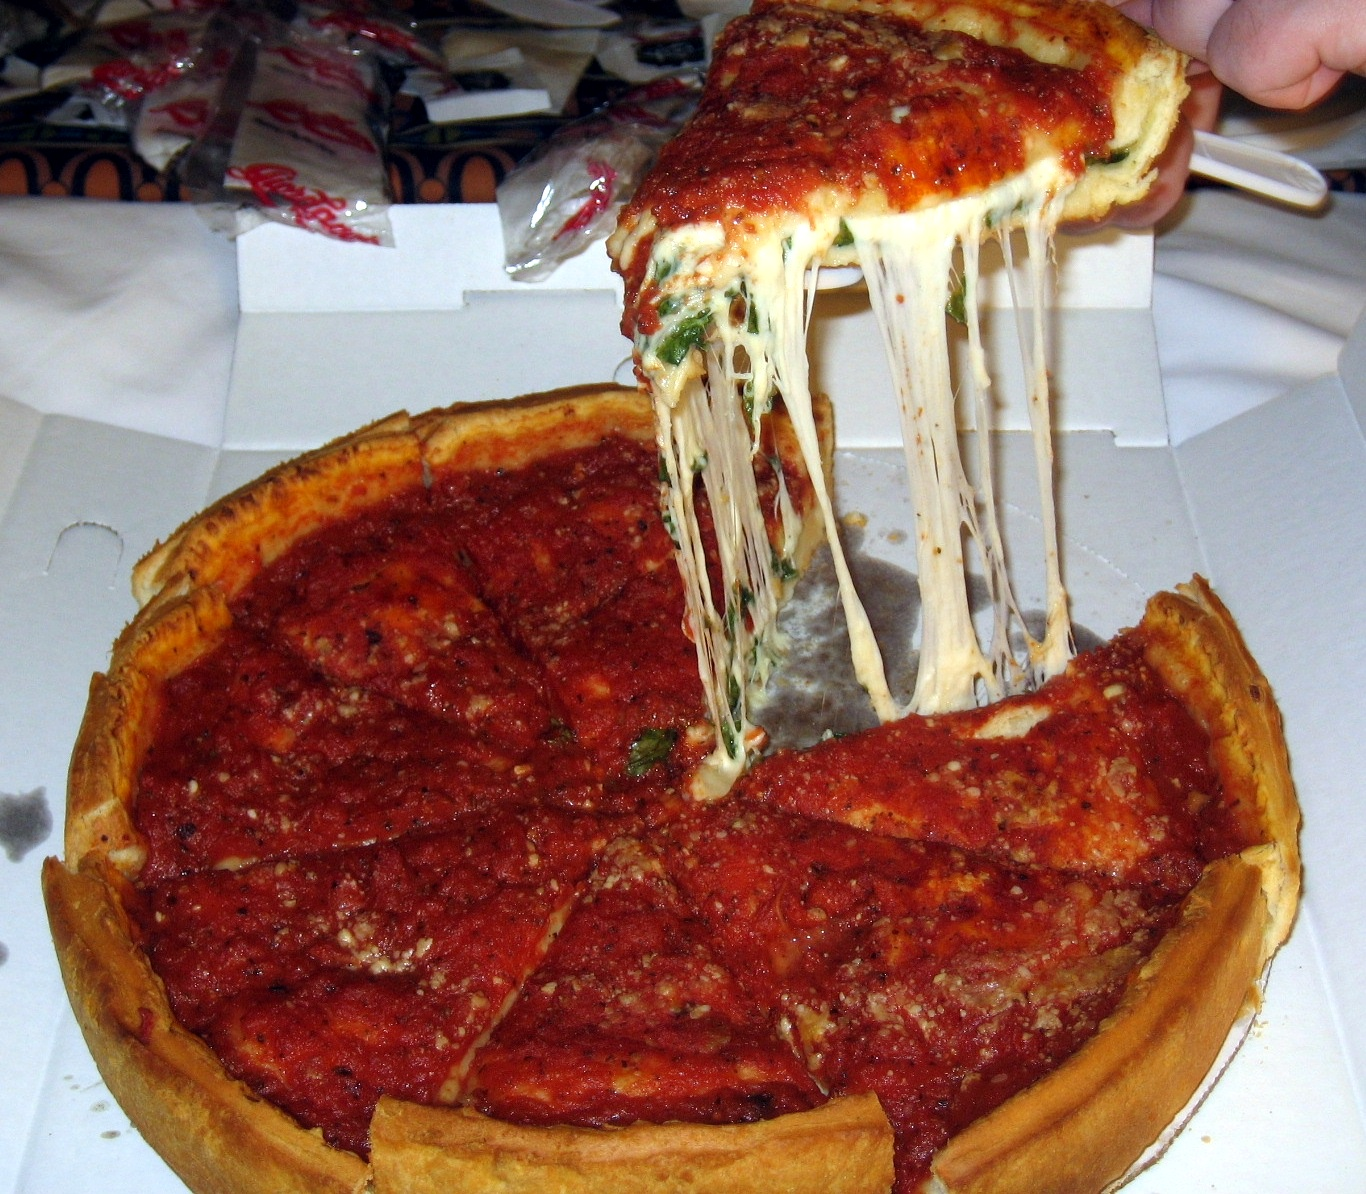 http://upload.wikimedia.org/wikipedia/commons/4/4b/Giordano%27s_Deep_Dish_Pizza.jpg